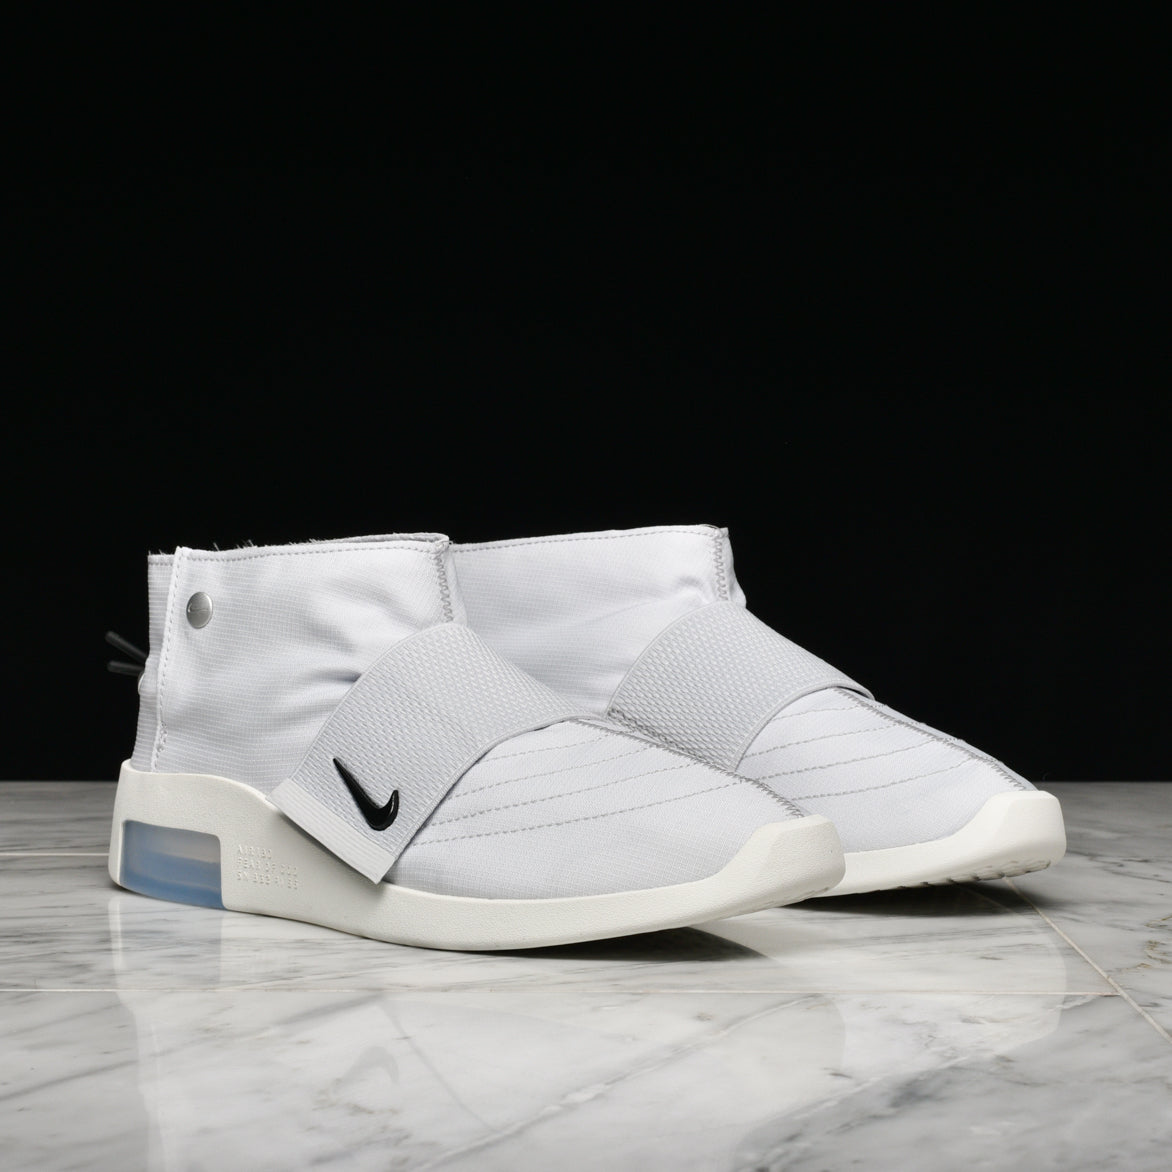 AIR FEAR OF GOD MOC - PURE PLATINUM